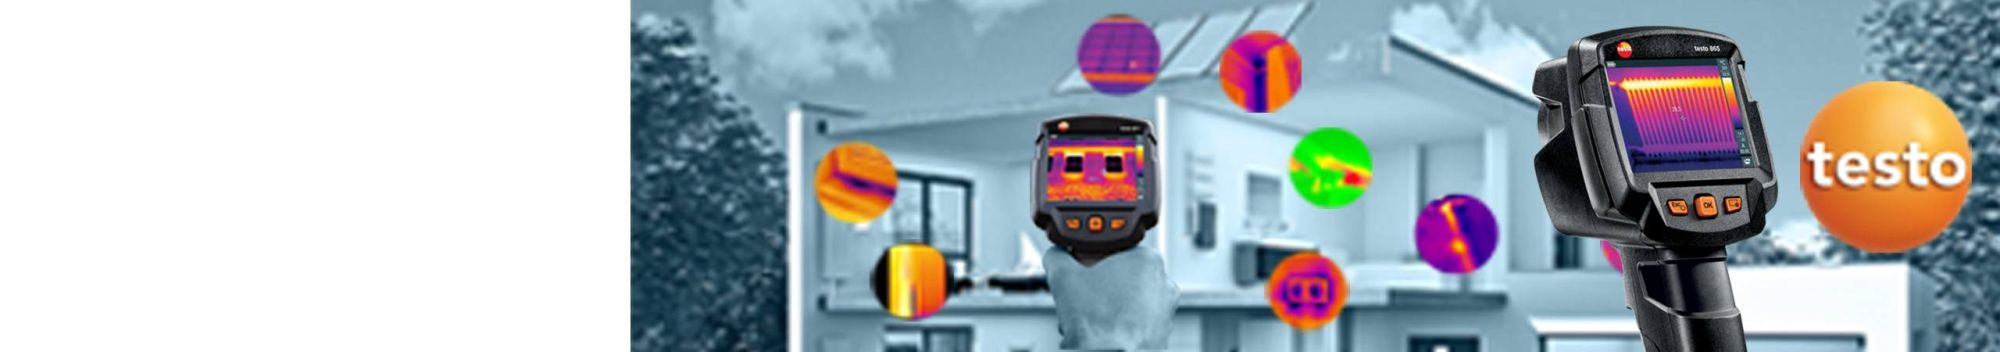 Testo thermal imaging cameras<strong> Prices from just £699!</strong>